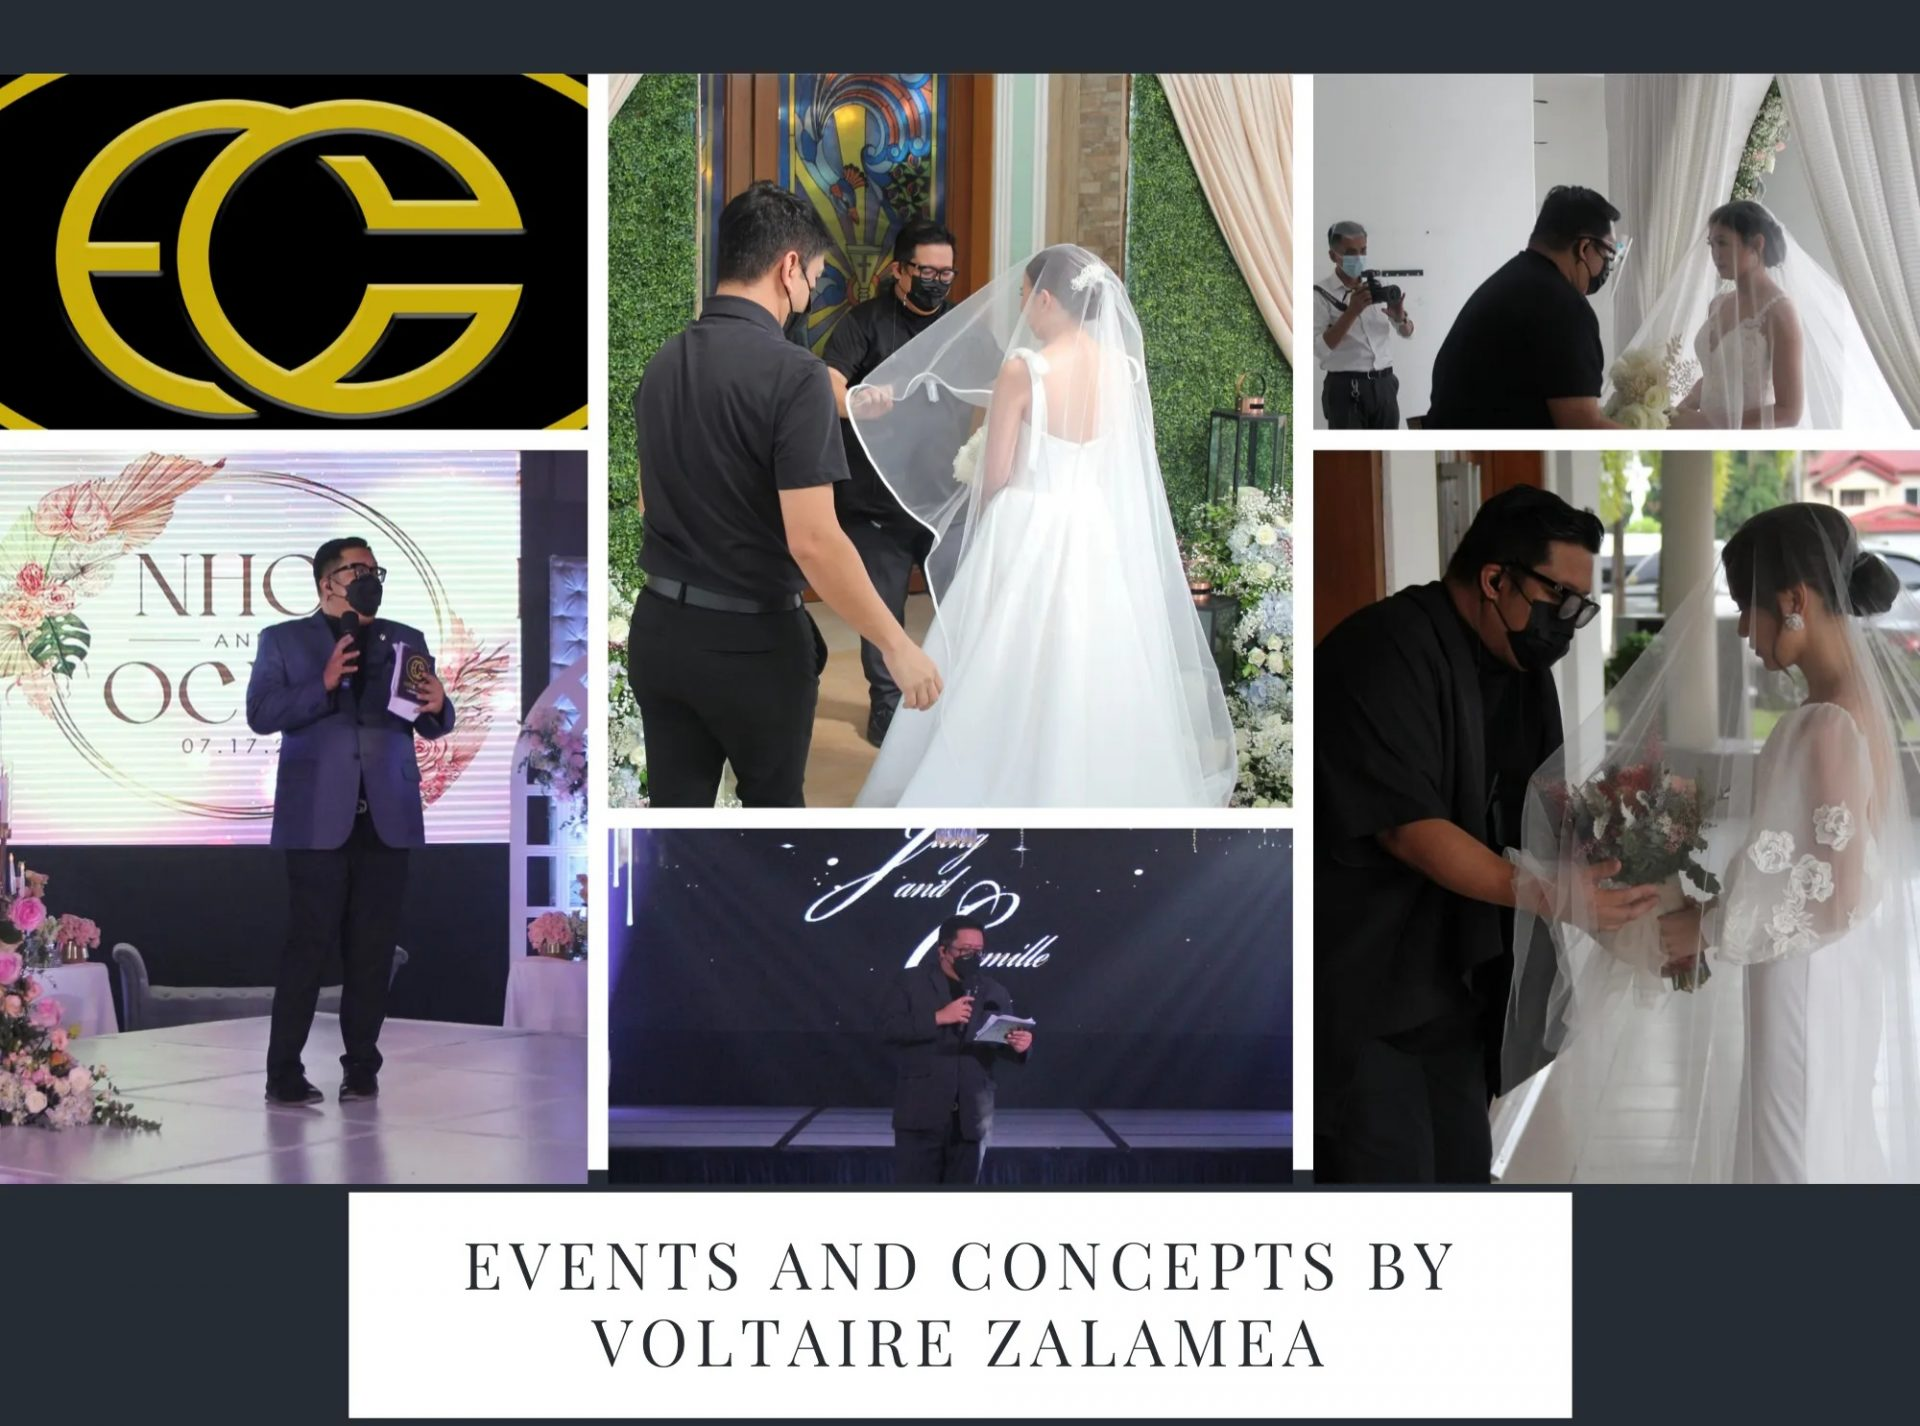 Events and Concepts by Voltaire Zalamea